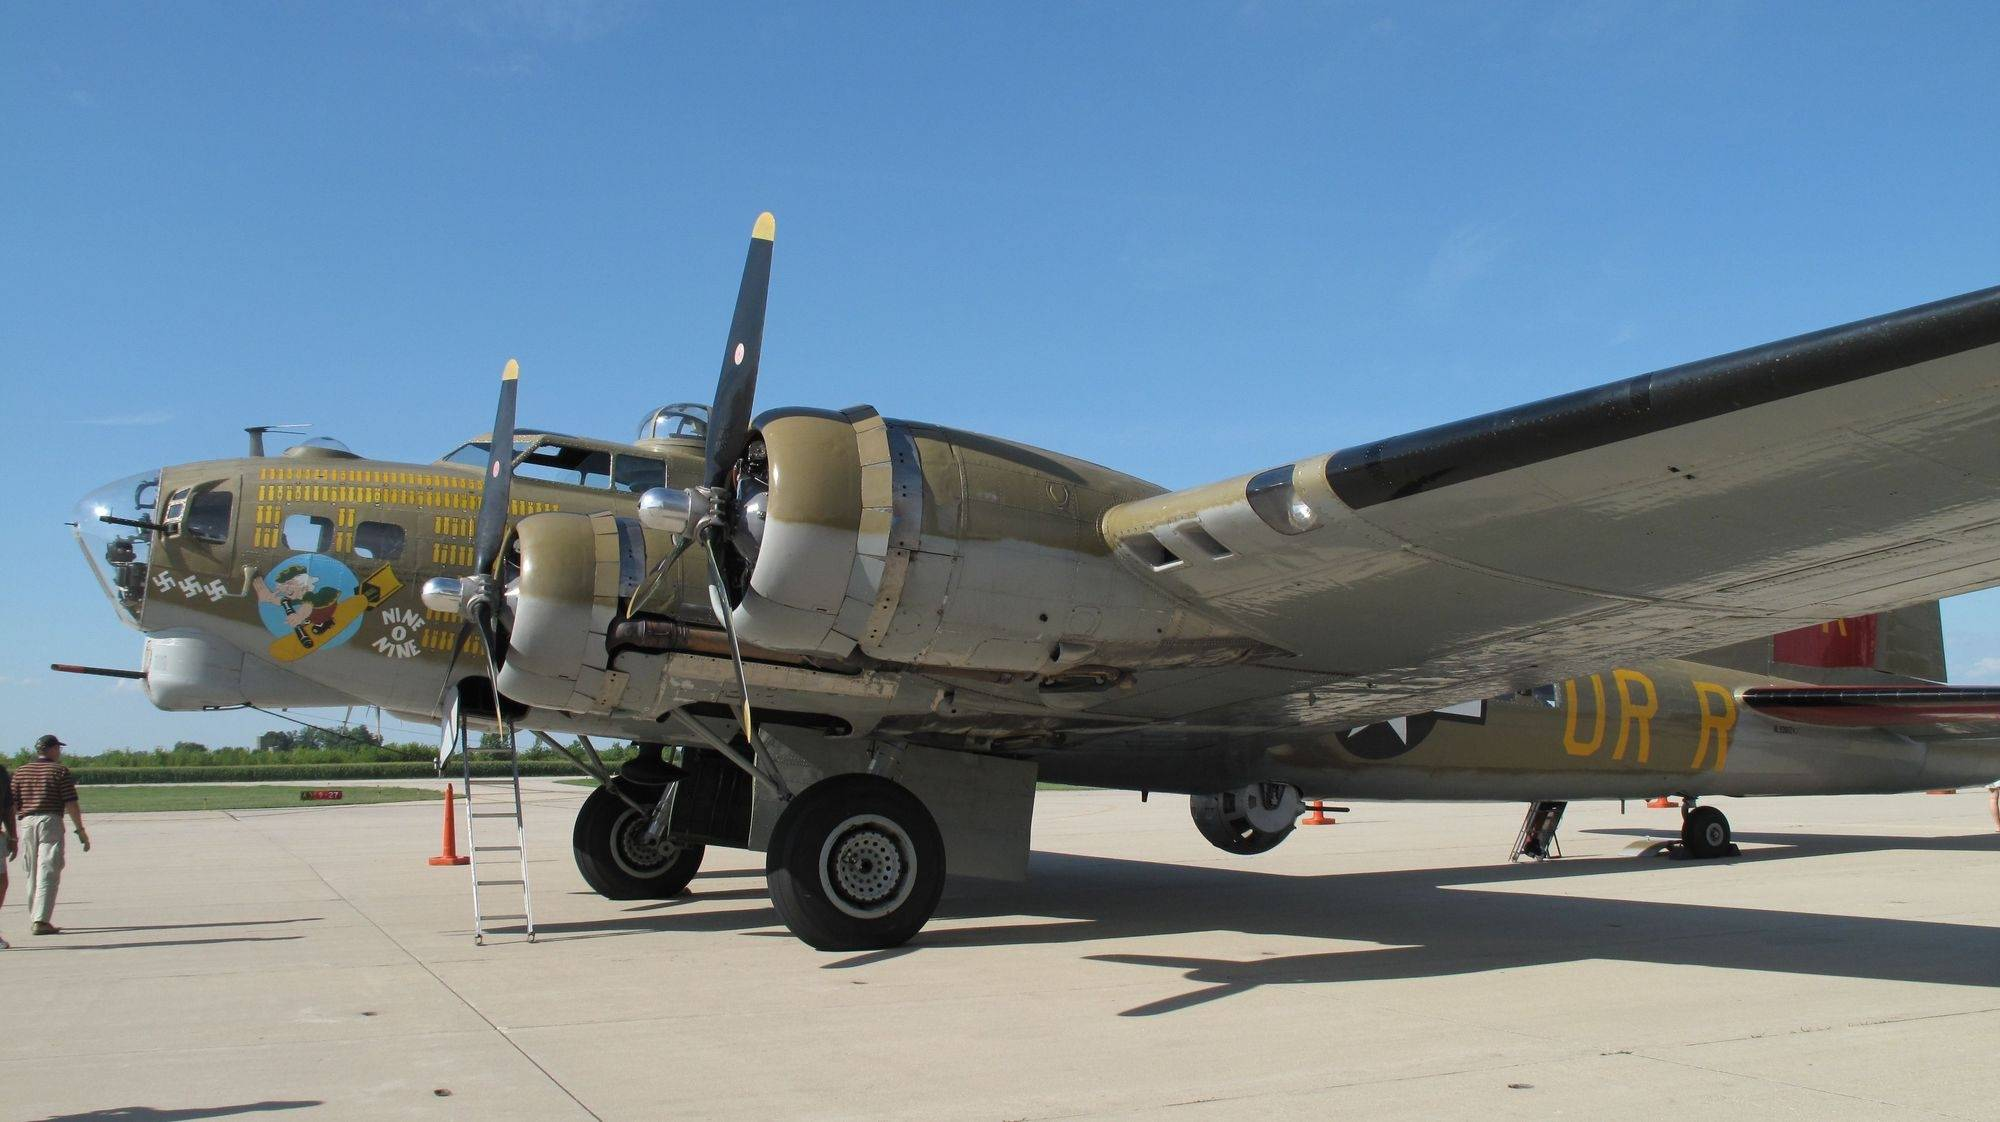 DuPage ride in a B-17 bomber offers a glimpse into World War II